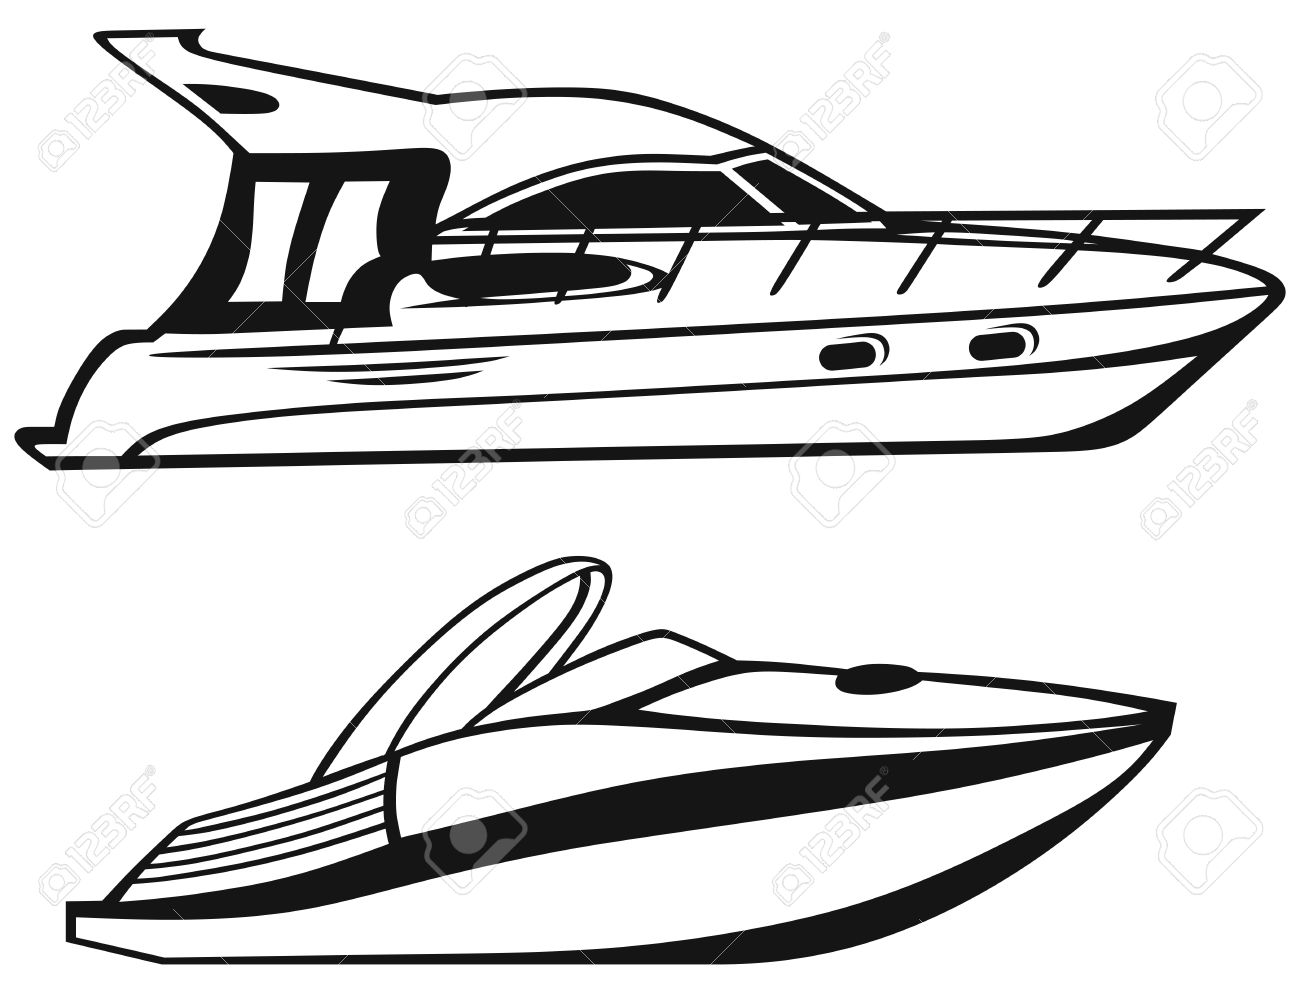 Speed boats clipart clip art black and white stock Luxury Yacht Isolated On White Background Royalty Free Cliparts ... clip art black and white stock